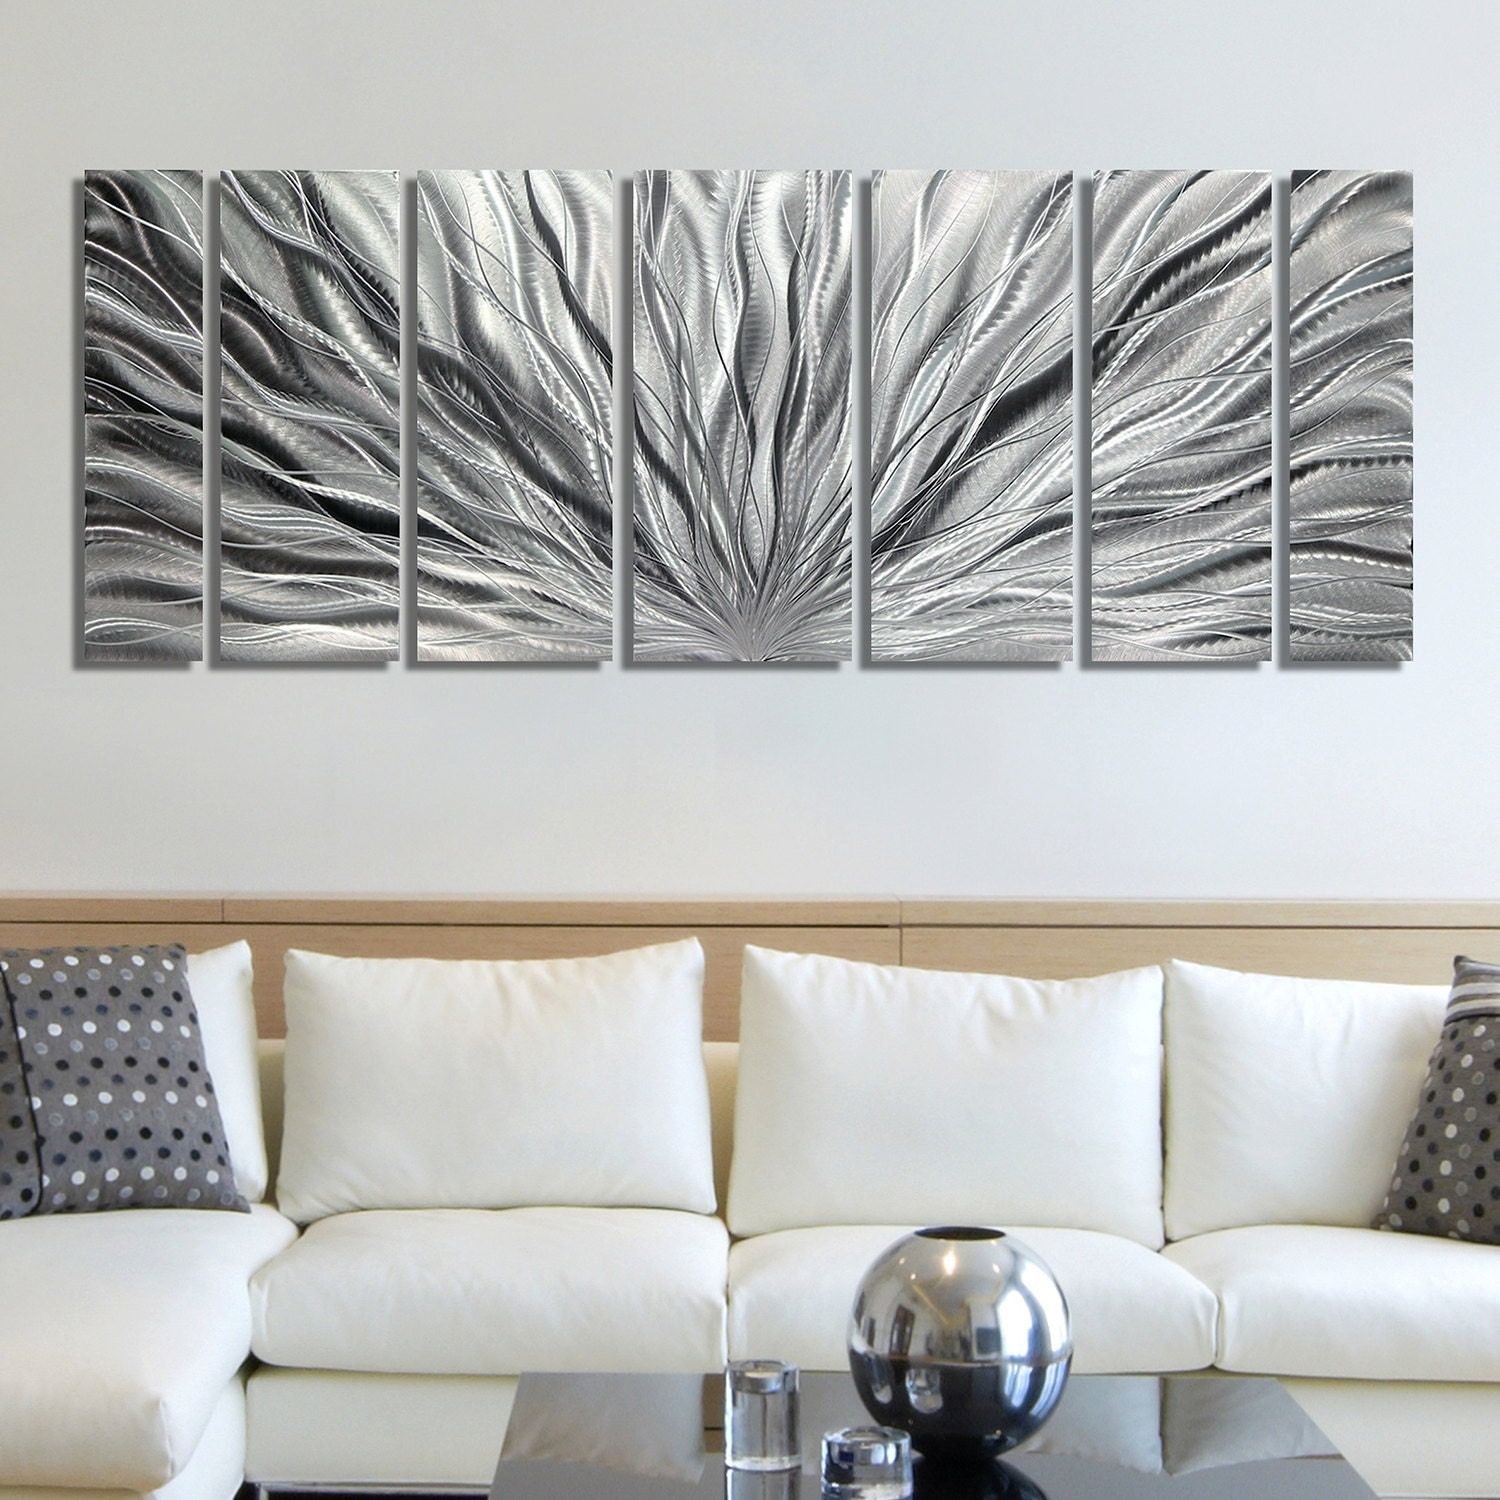 Sale large multi panel metal wall art in all silver for Contemporary decorative accessories